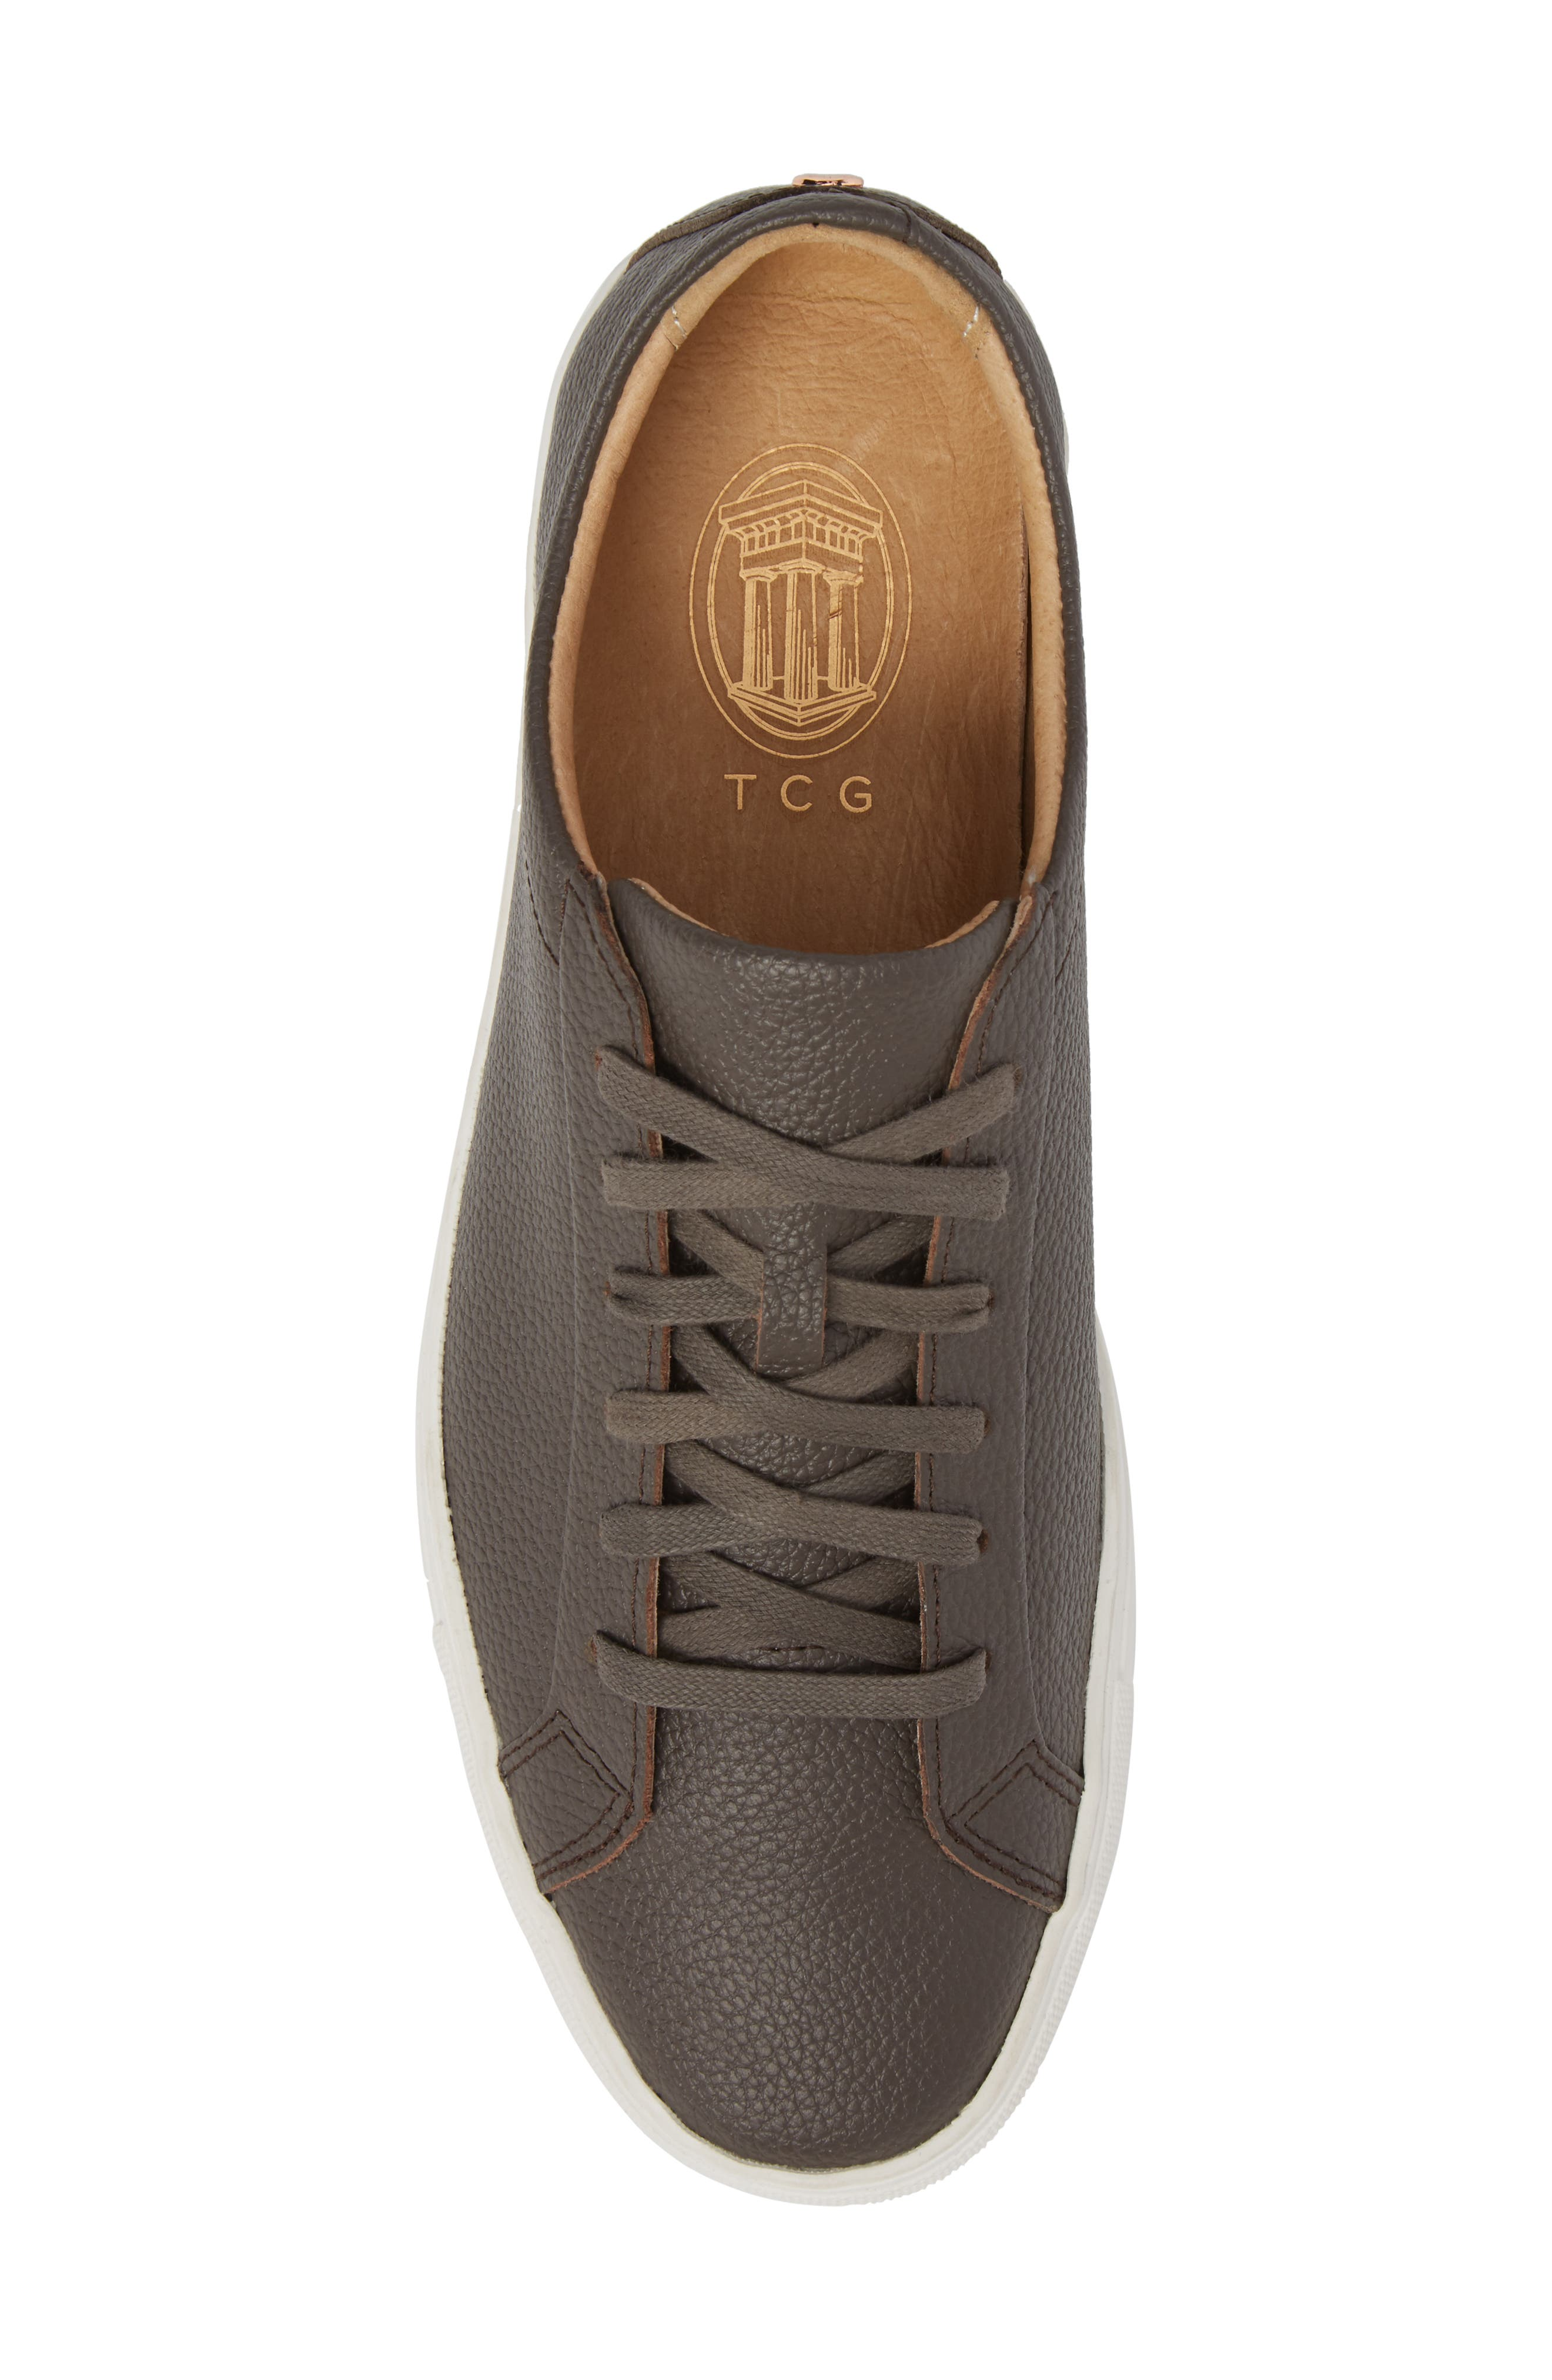 Kennedy Low Top Sneaker,                             Alternate thumbnail 5, color,                             Falcon Leather